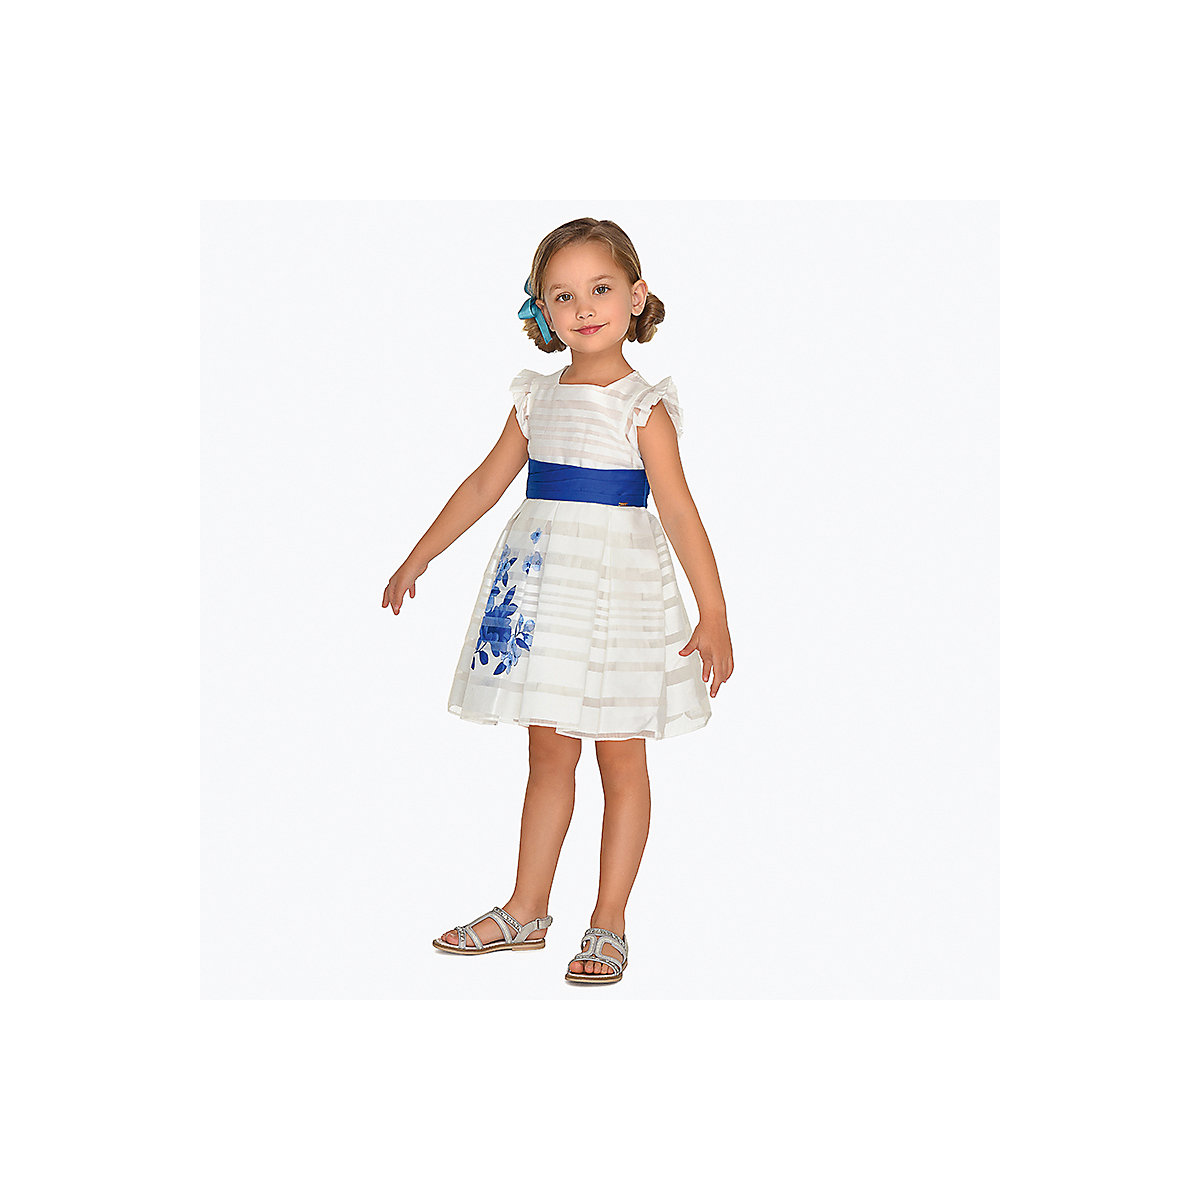 MAYORAL Dresses 10687179 Girl Children Party fitted pleated skirt Blue Polyester Preppy Style Floral Knee-Length Sleeveless Sleeve white tube top and floral print pleated hem skirt co ord